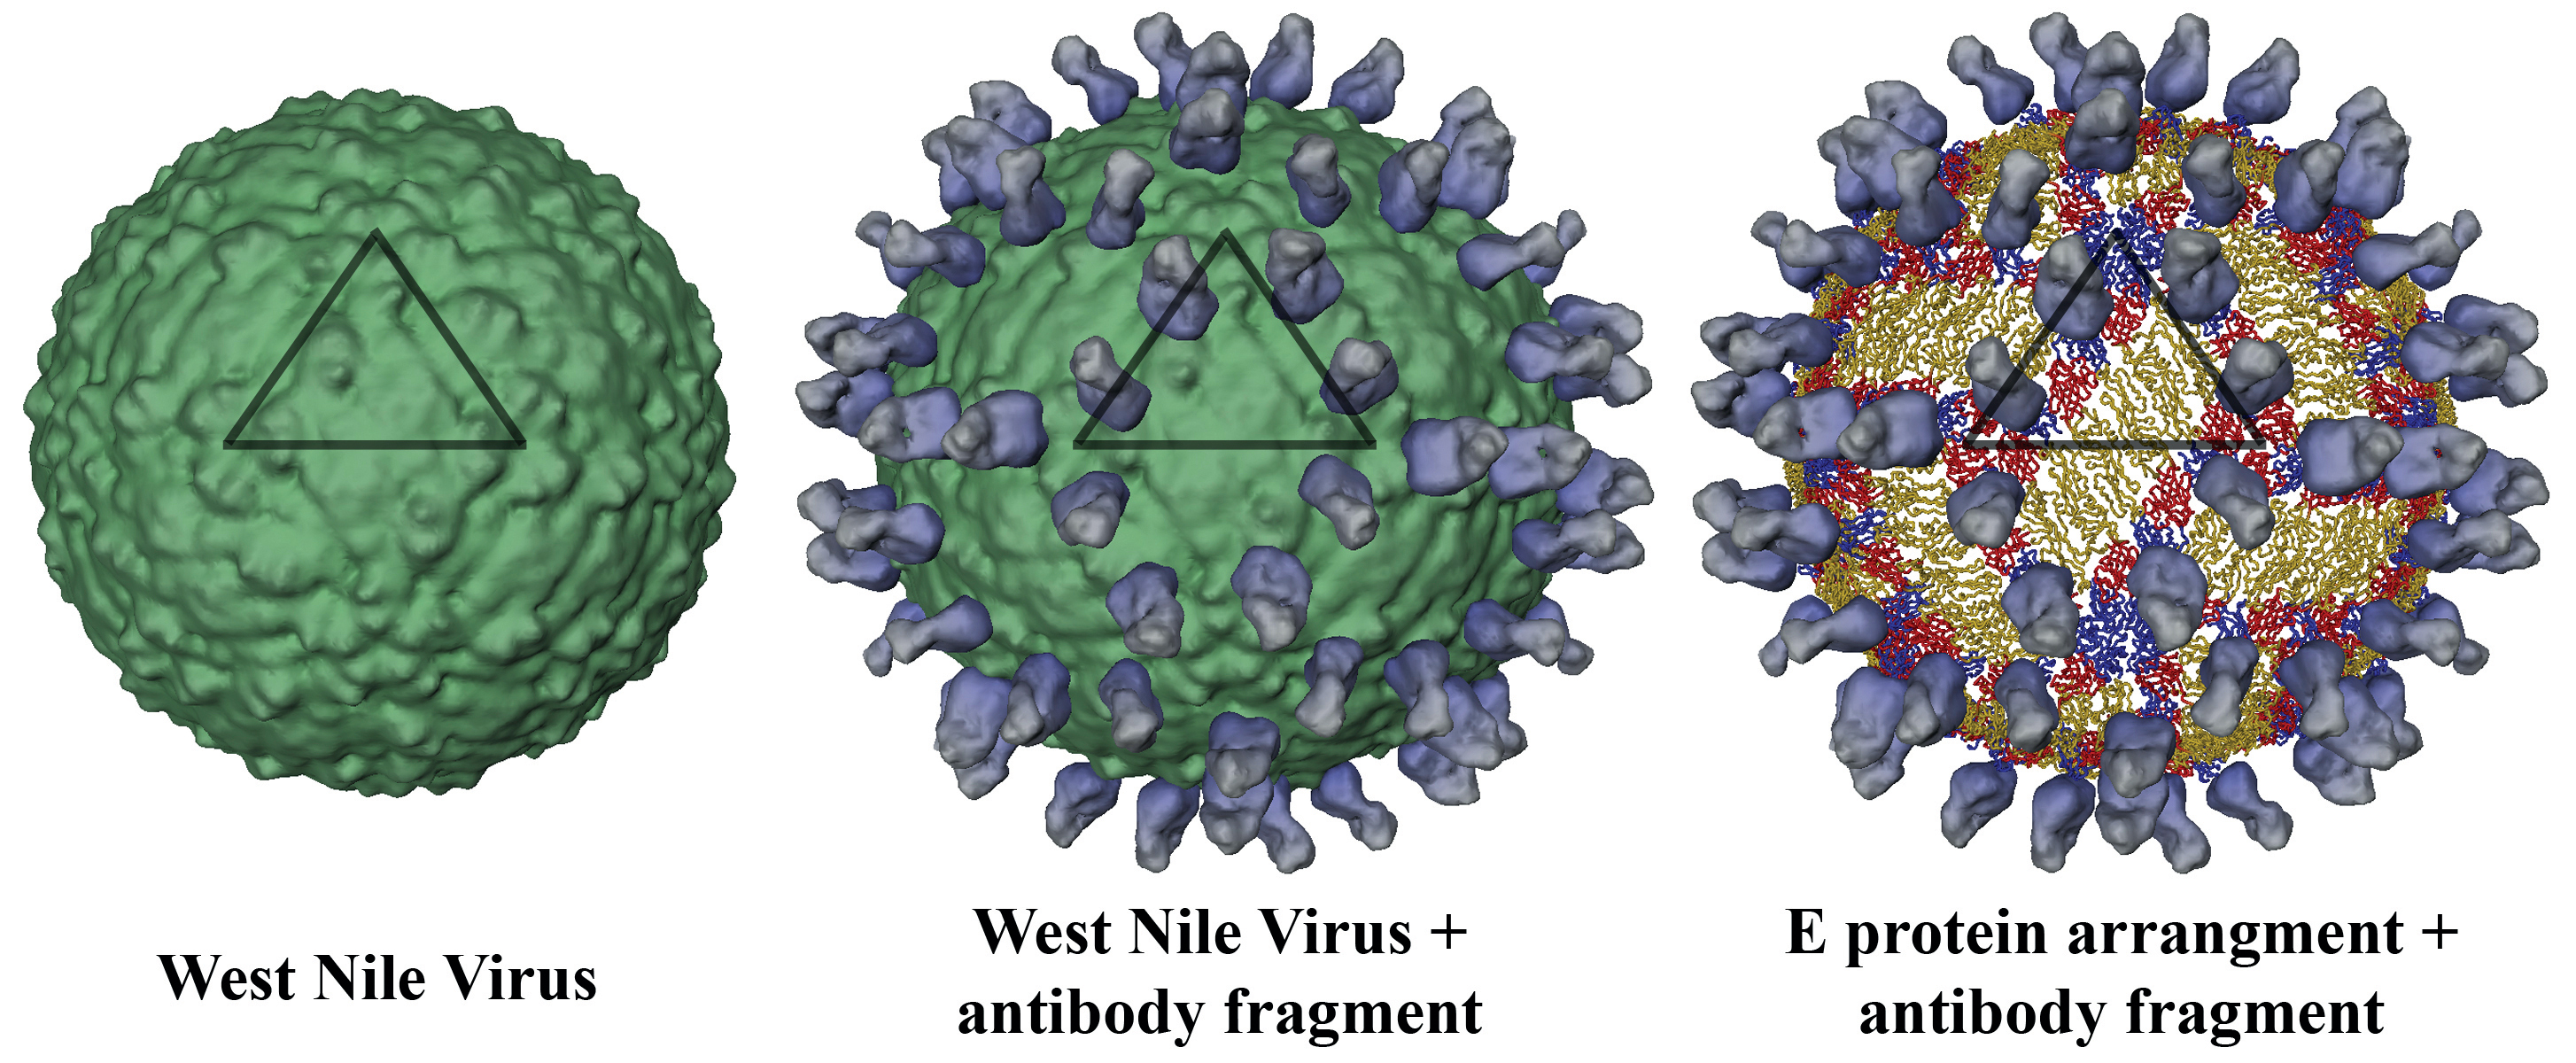 a geography of the west nile virus West nile virus encephalitis (wne) is the most common neuroinvasive manifestation of wnnd wne presents with similar symptoms to other viral encephalitis with fever, headaches, and altered mental status.